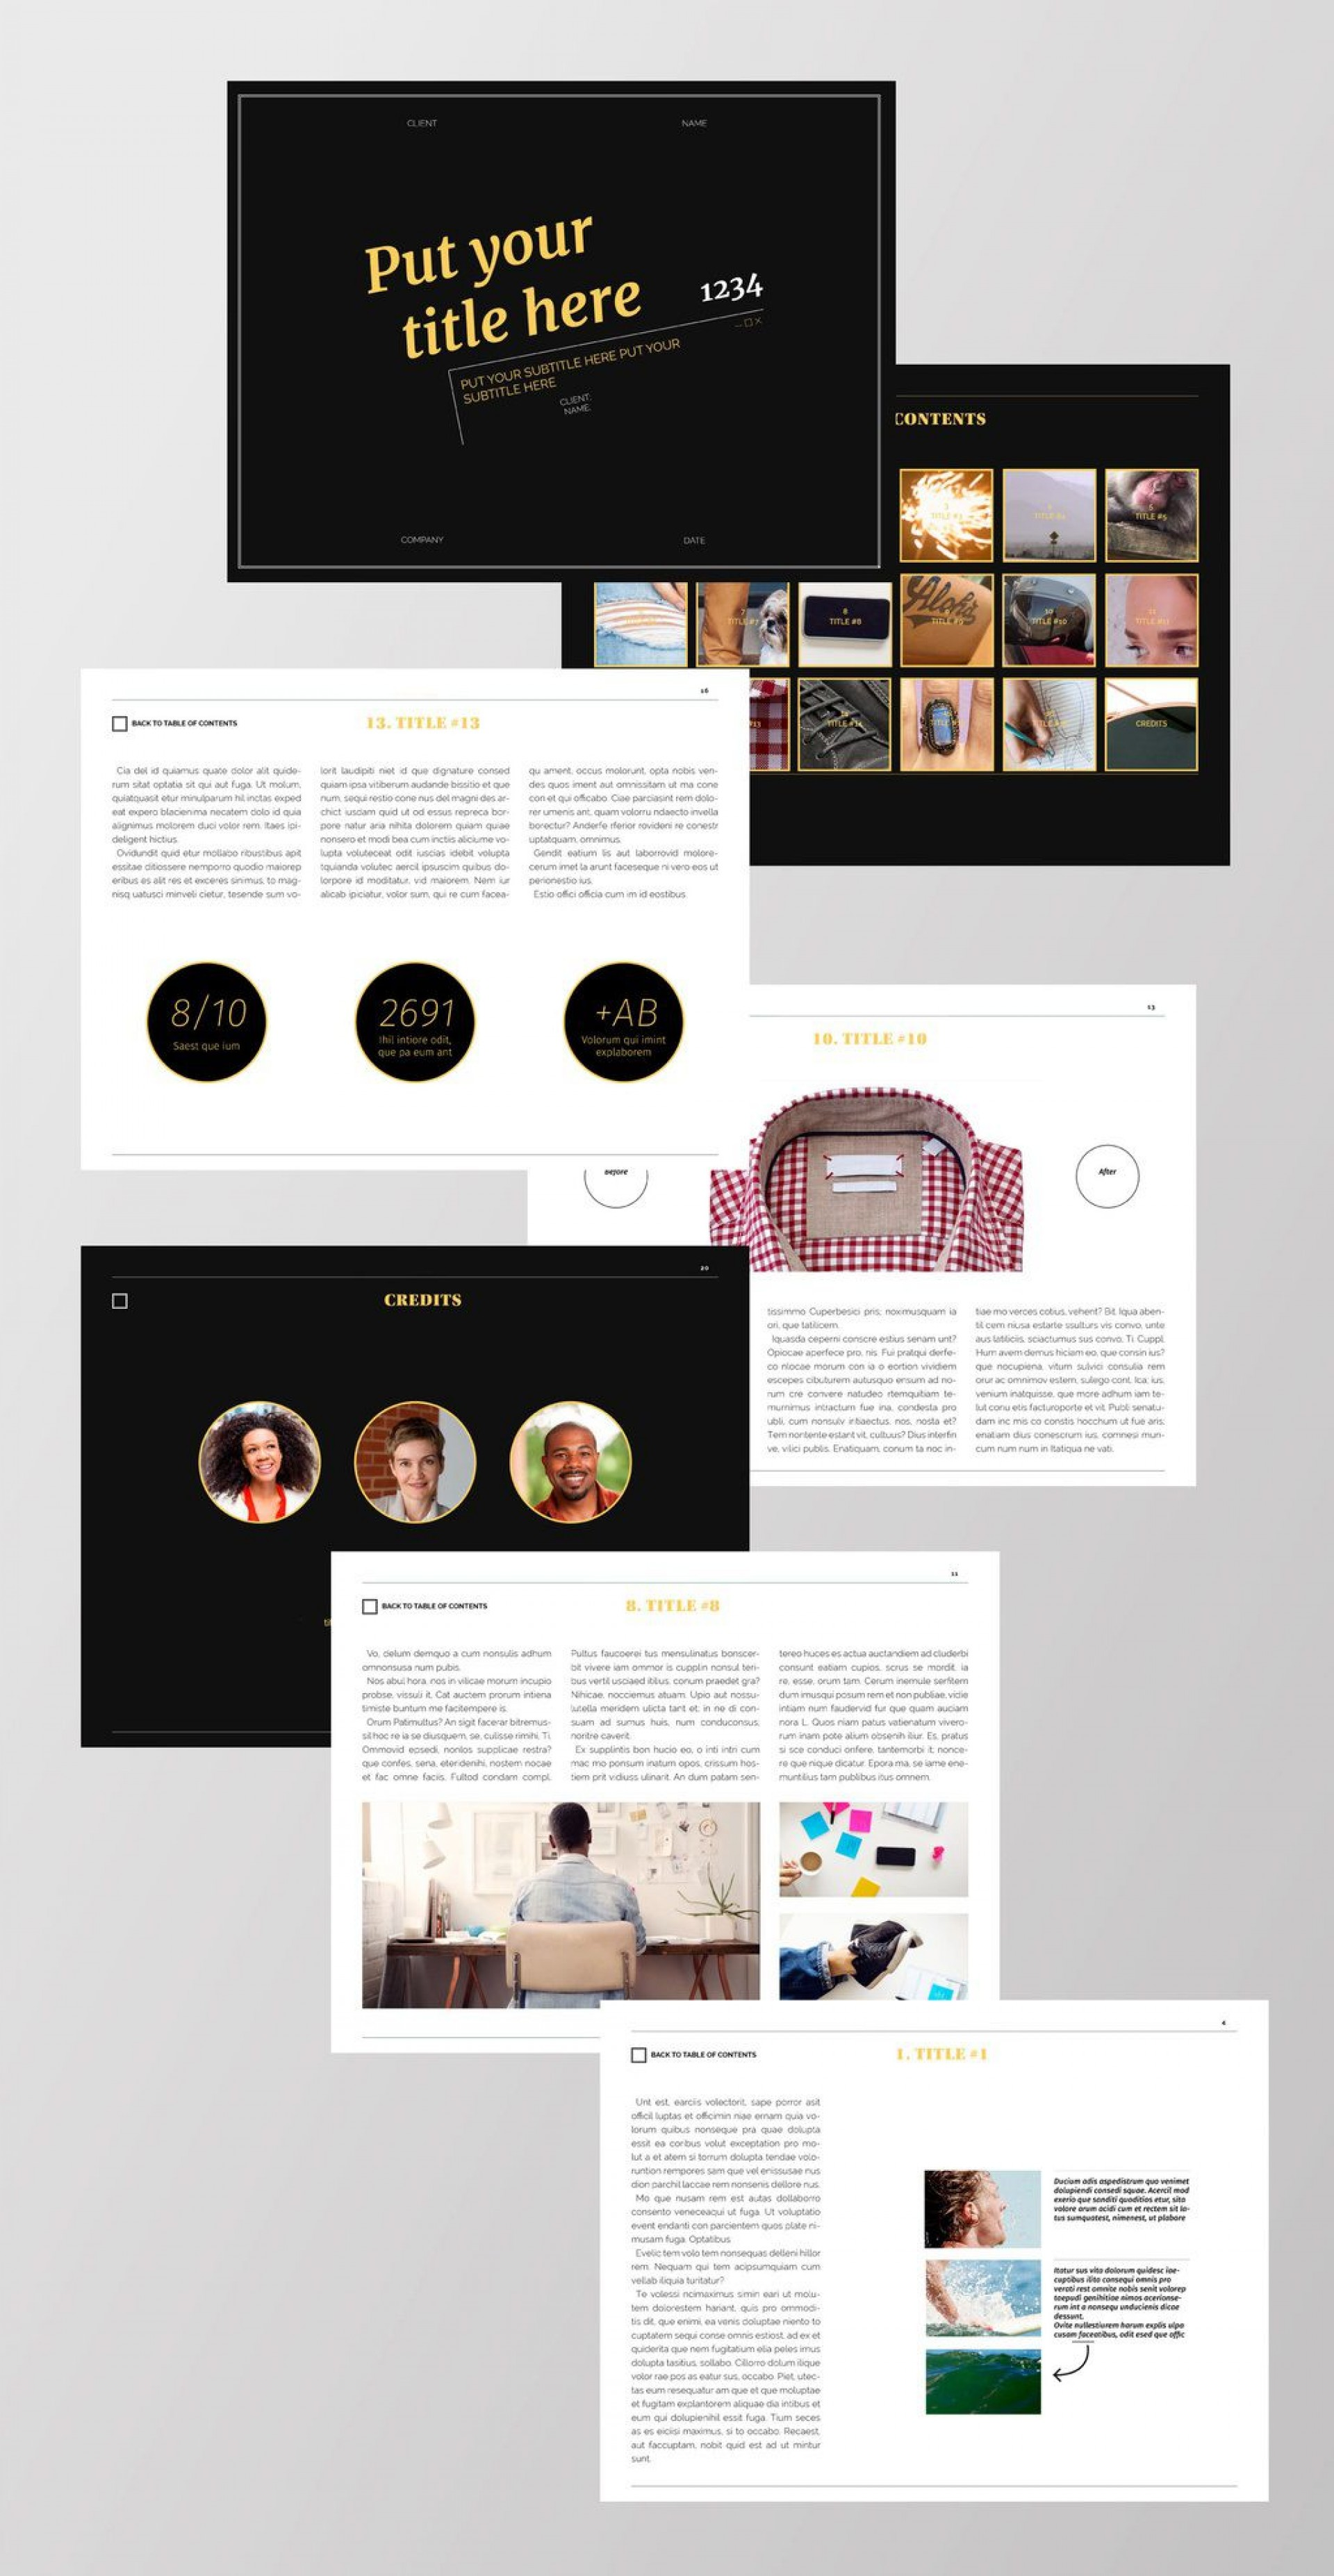 003 Archaicawful Indesign Magazine Template Free Photo  Cover Download Indd Cs51920